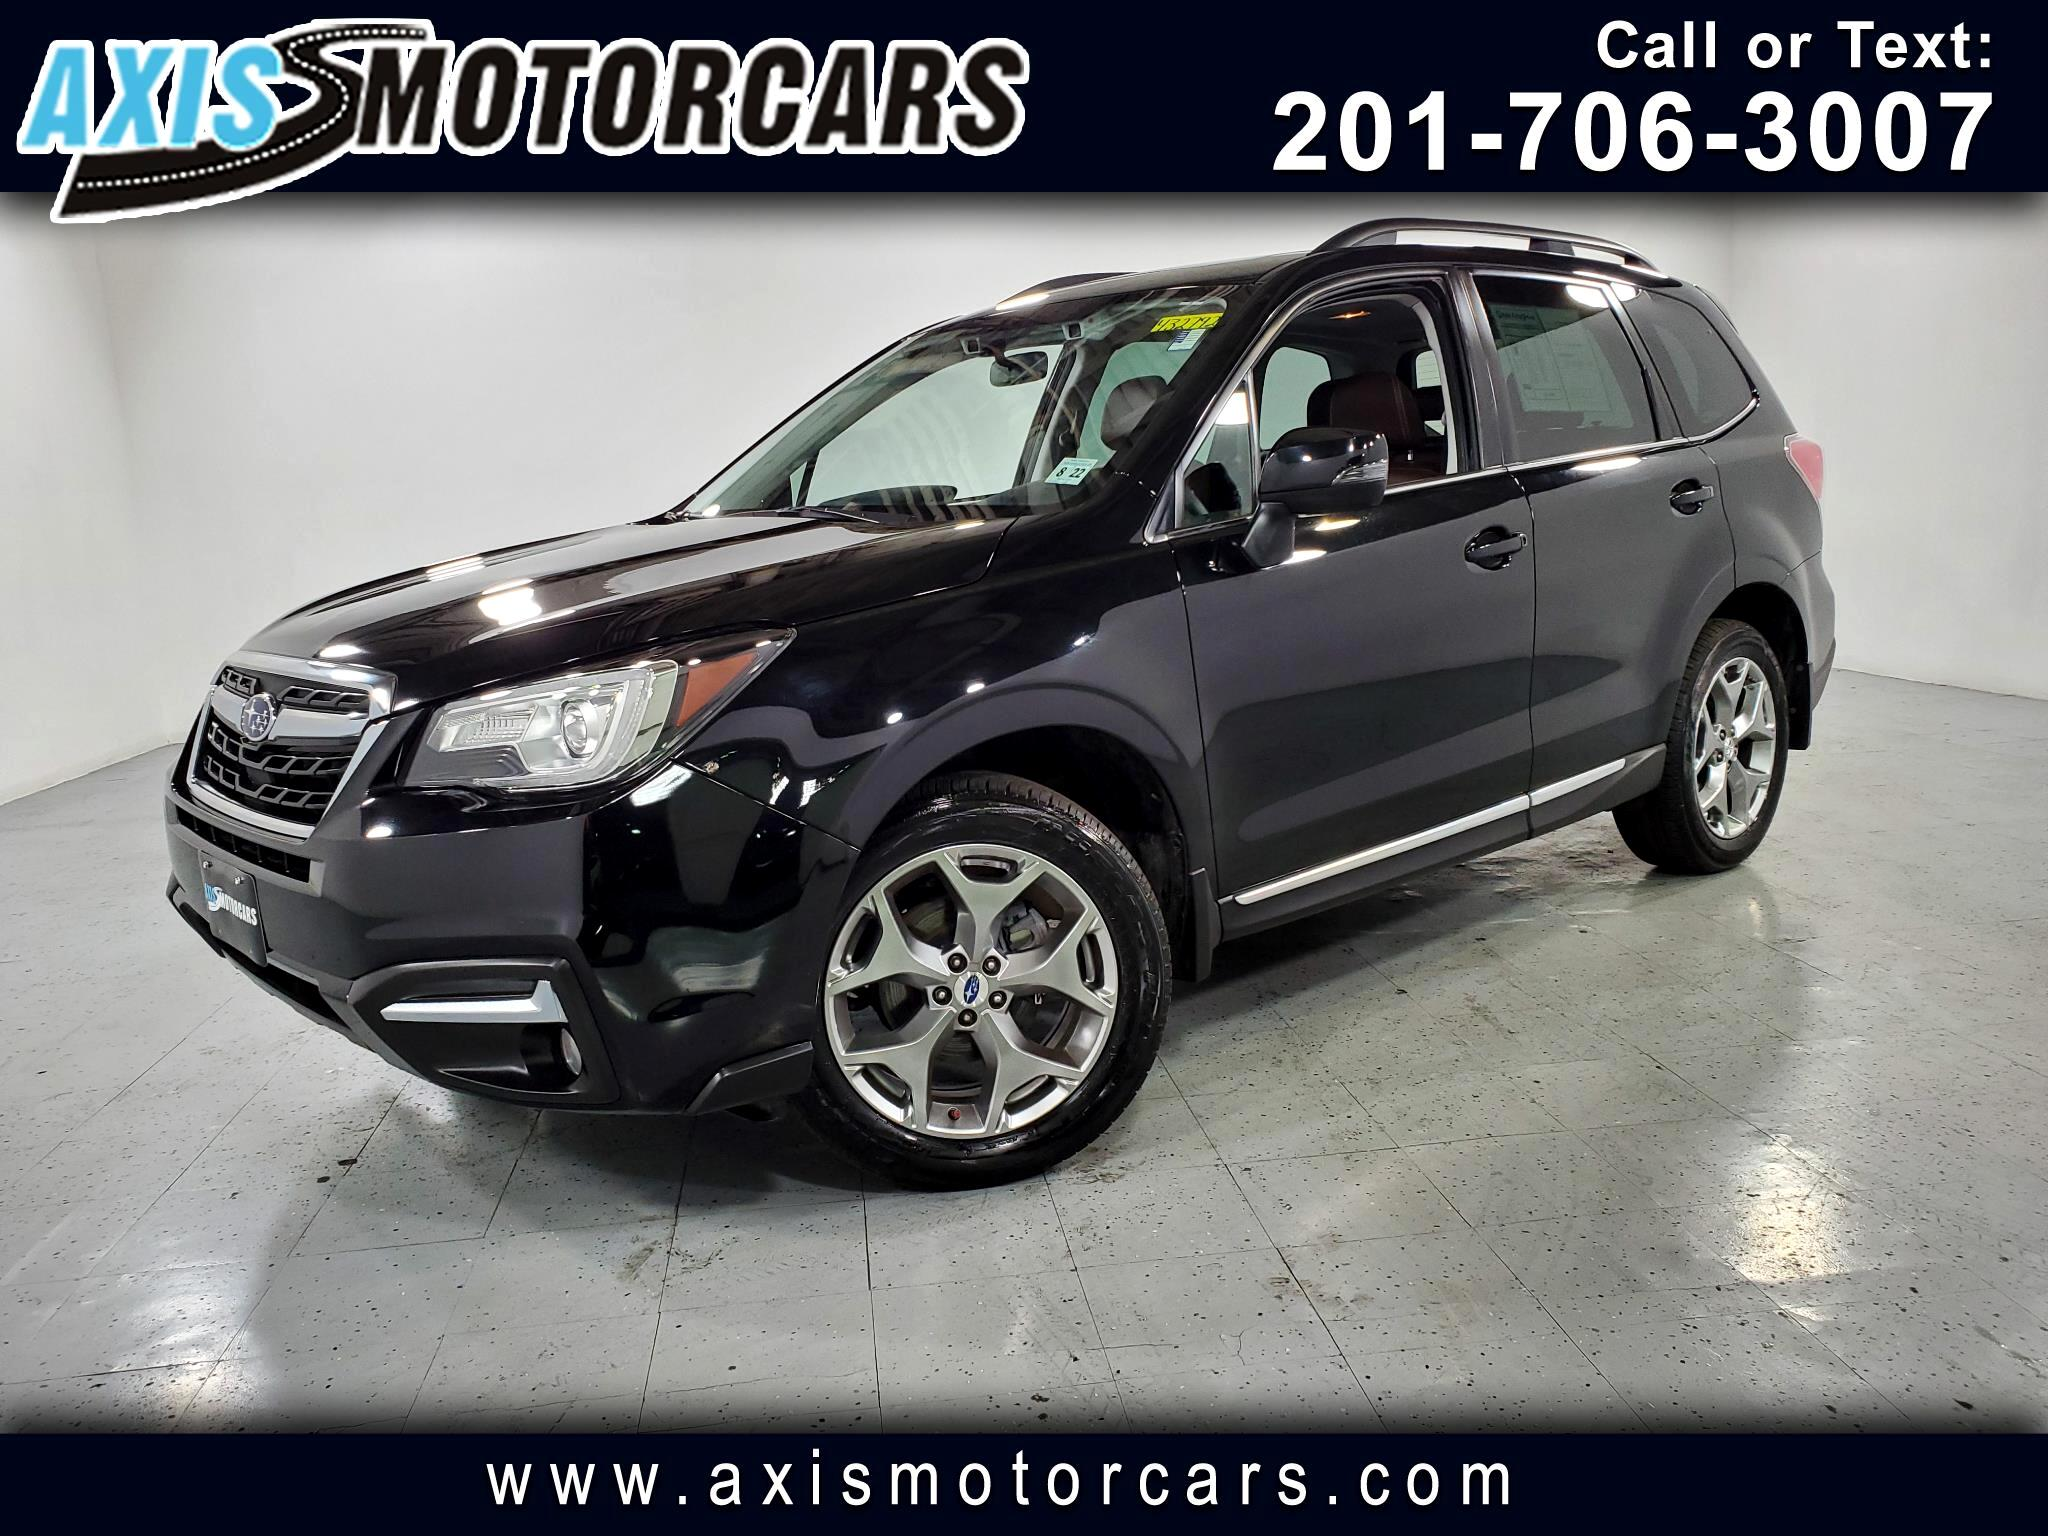 2018 Subaru Forester Touring w/Navigation Bakup Camera